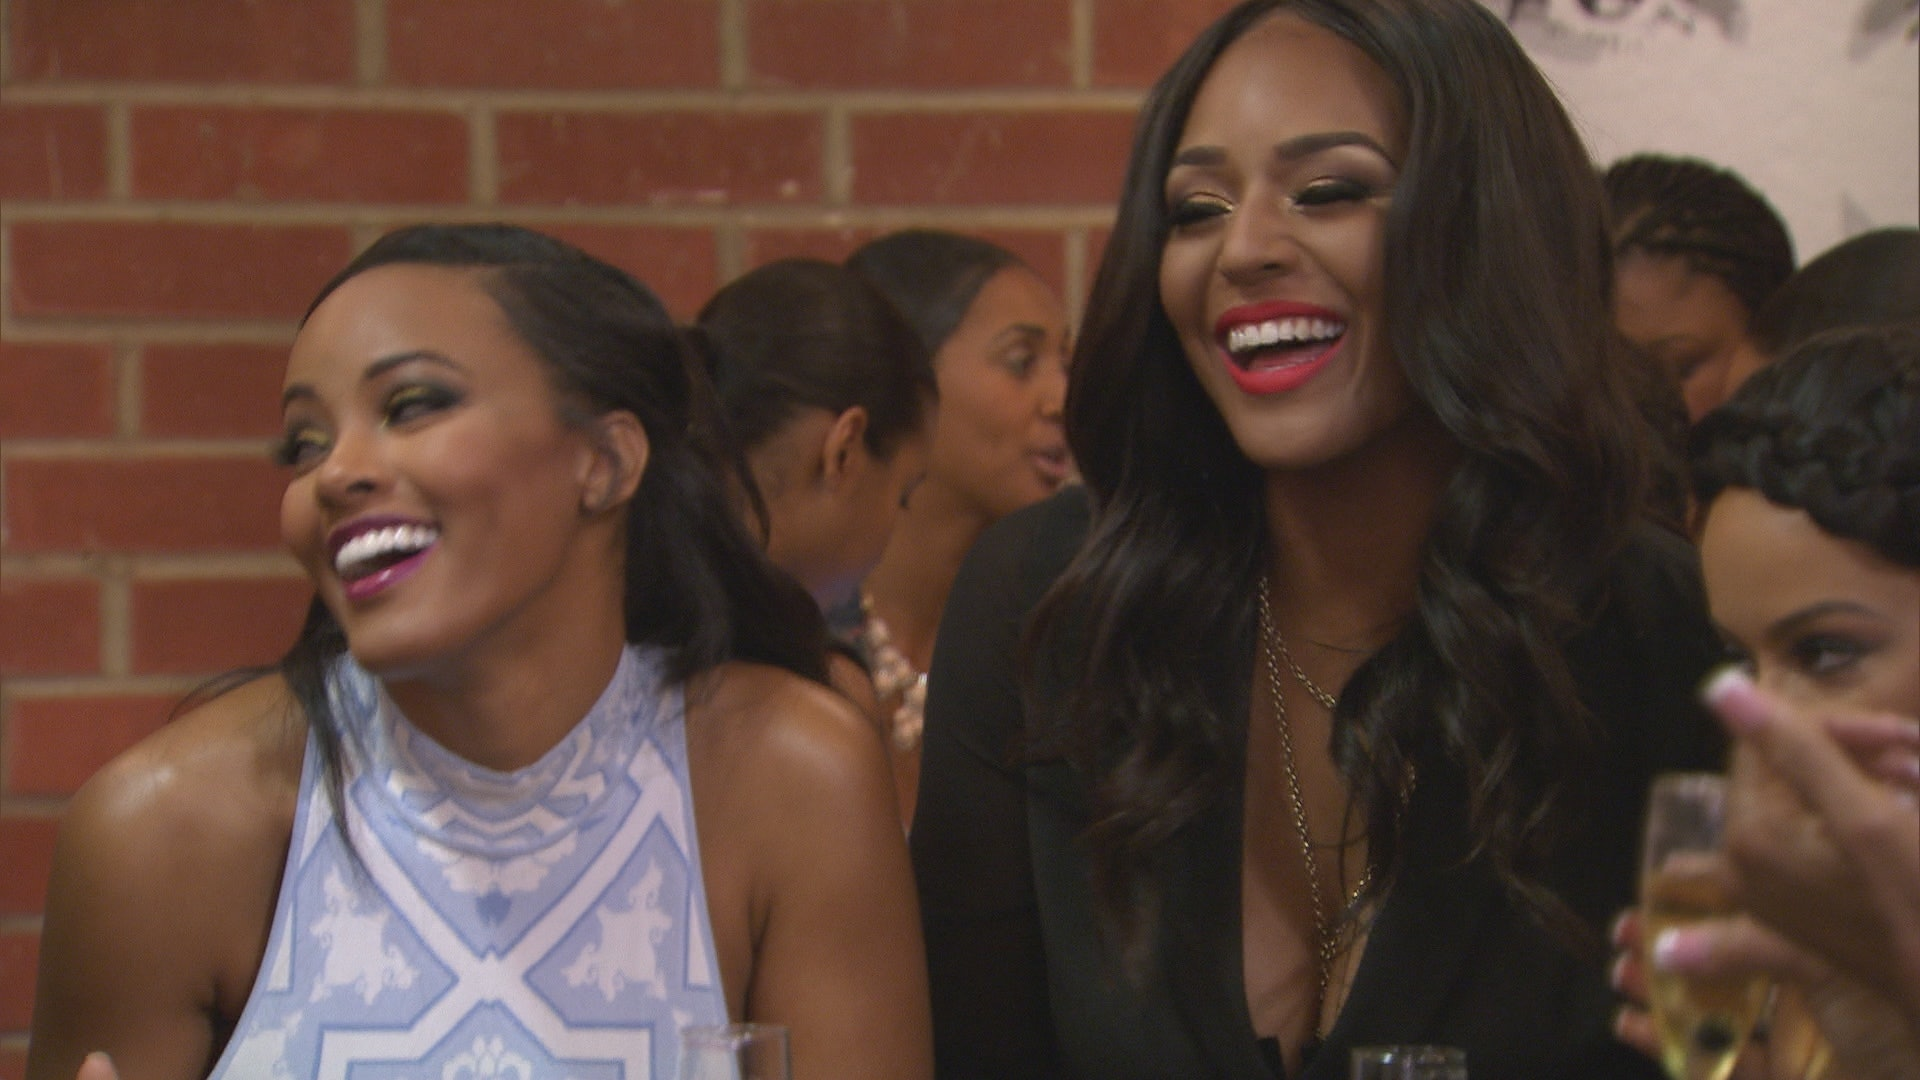 The Basketball Wives La Cast Net Worth Will Make You Wish You Were On The Team